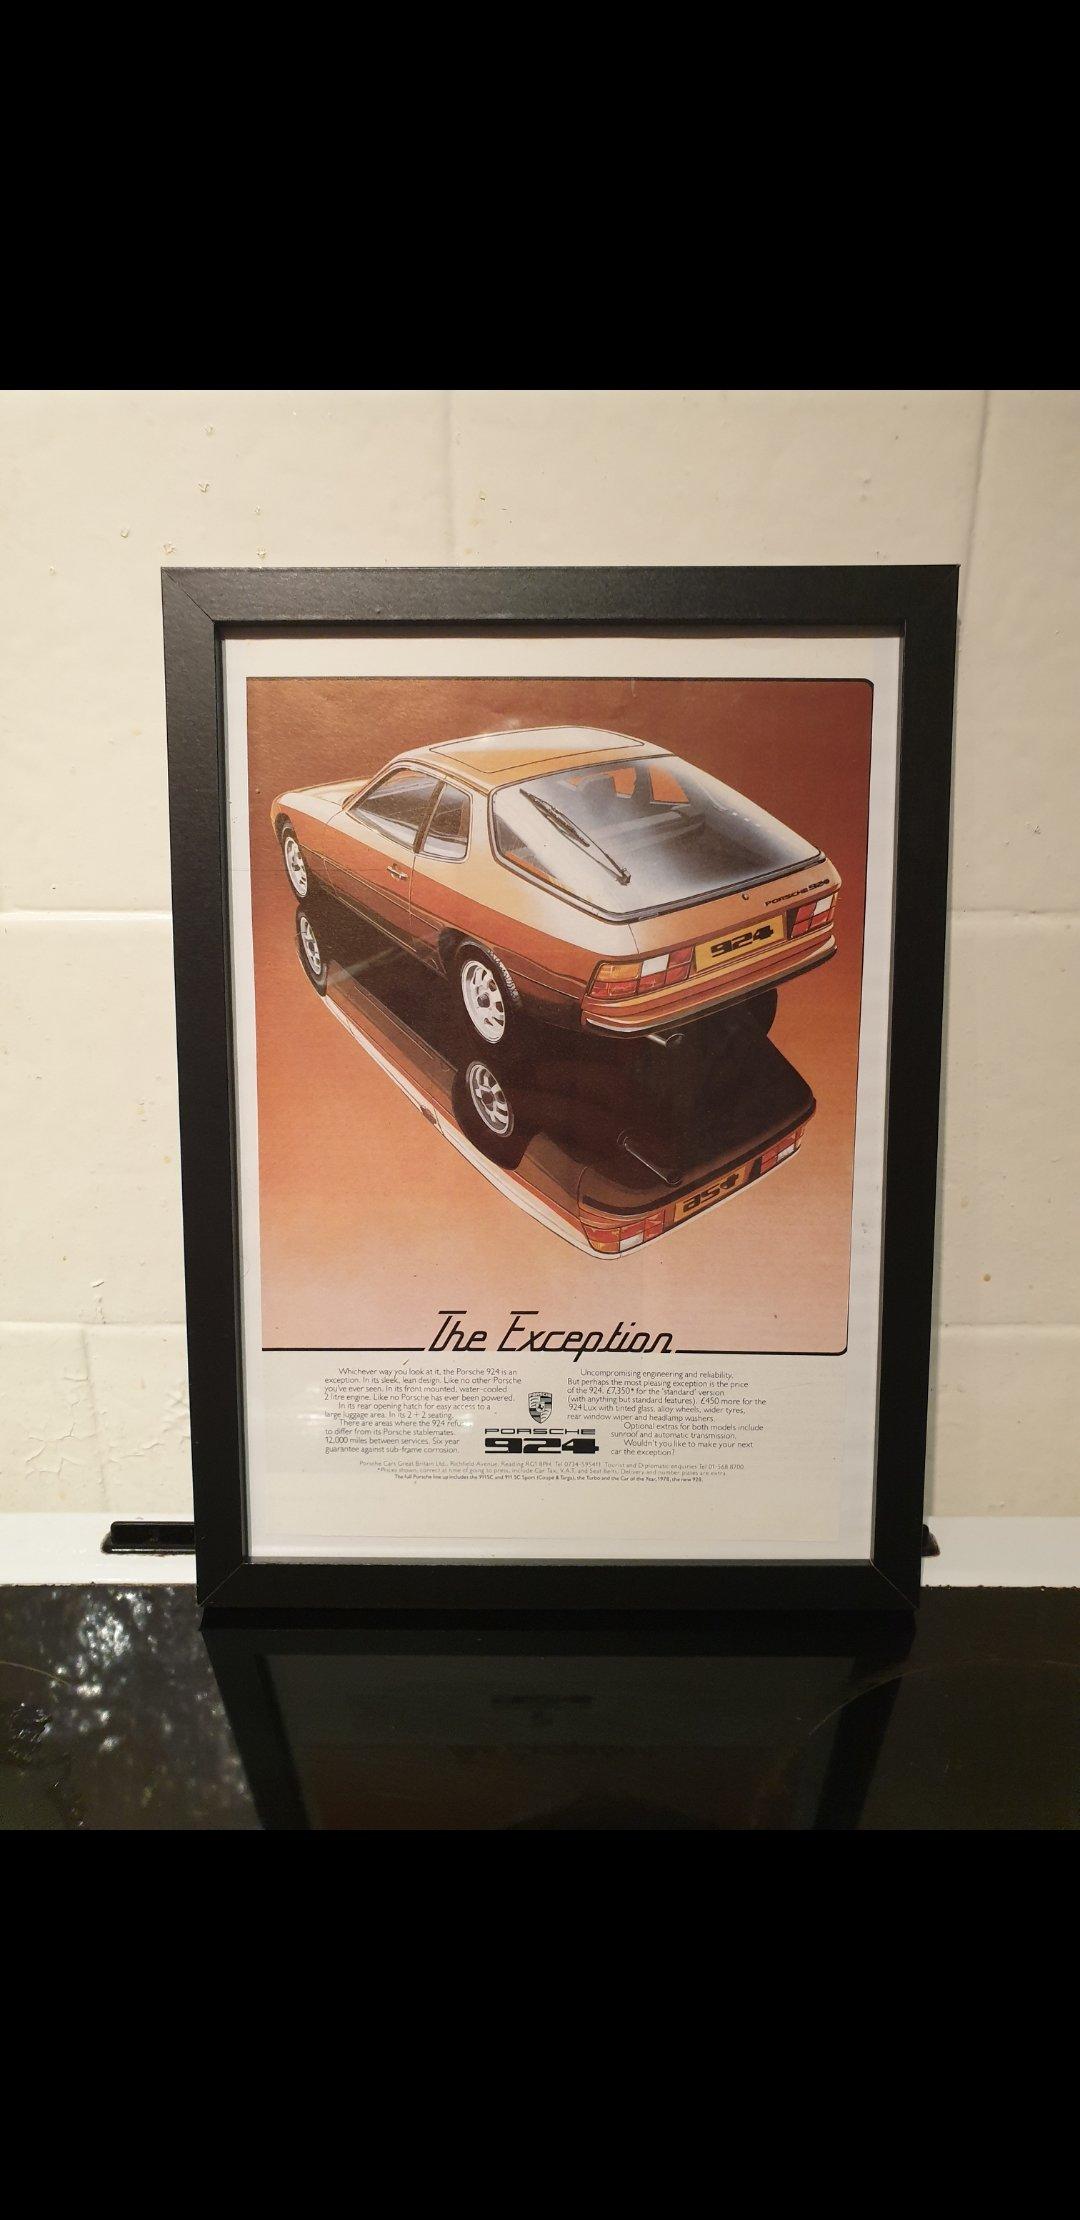 1978 Porsche 924 Framed Advert Original  For Sale (picture 1 of 2)